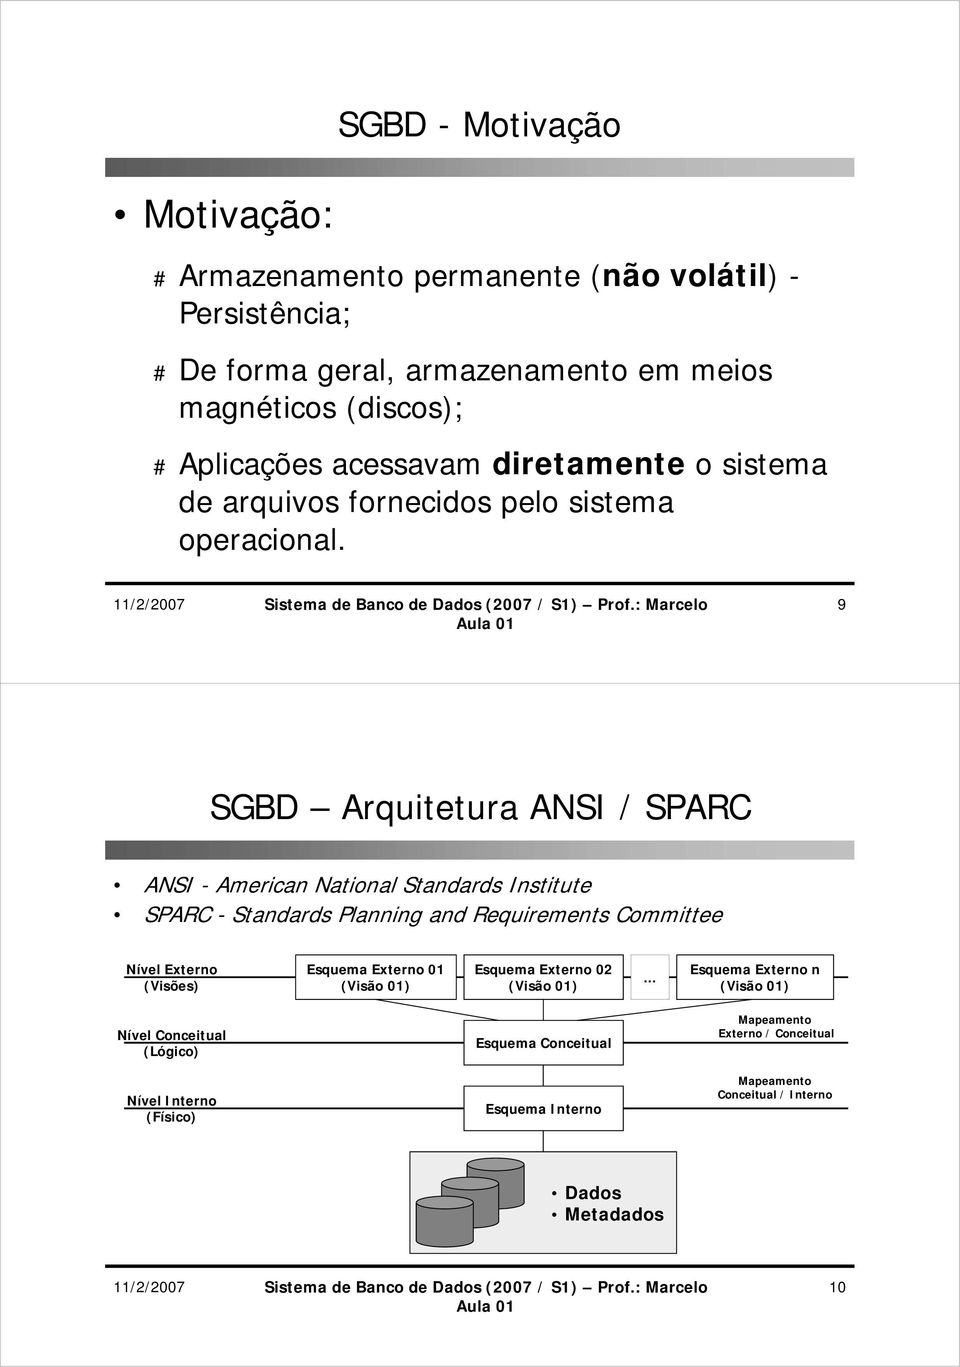 9 SGBD Arquitetura ANSI / SPARC ANSI - American National Standards Institute SPARC - Standards Planning and Requirements Committee Nível Externo (Visões) Esquema